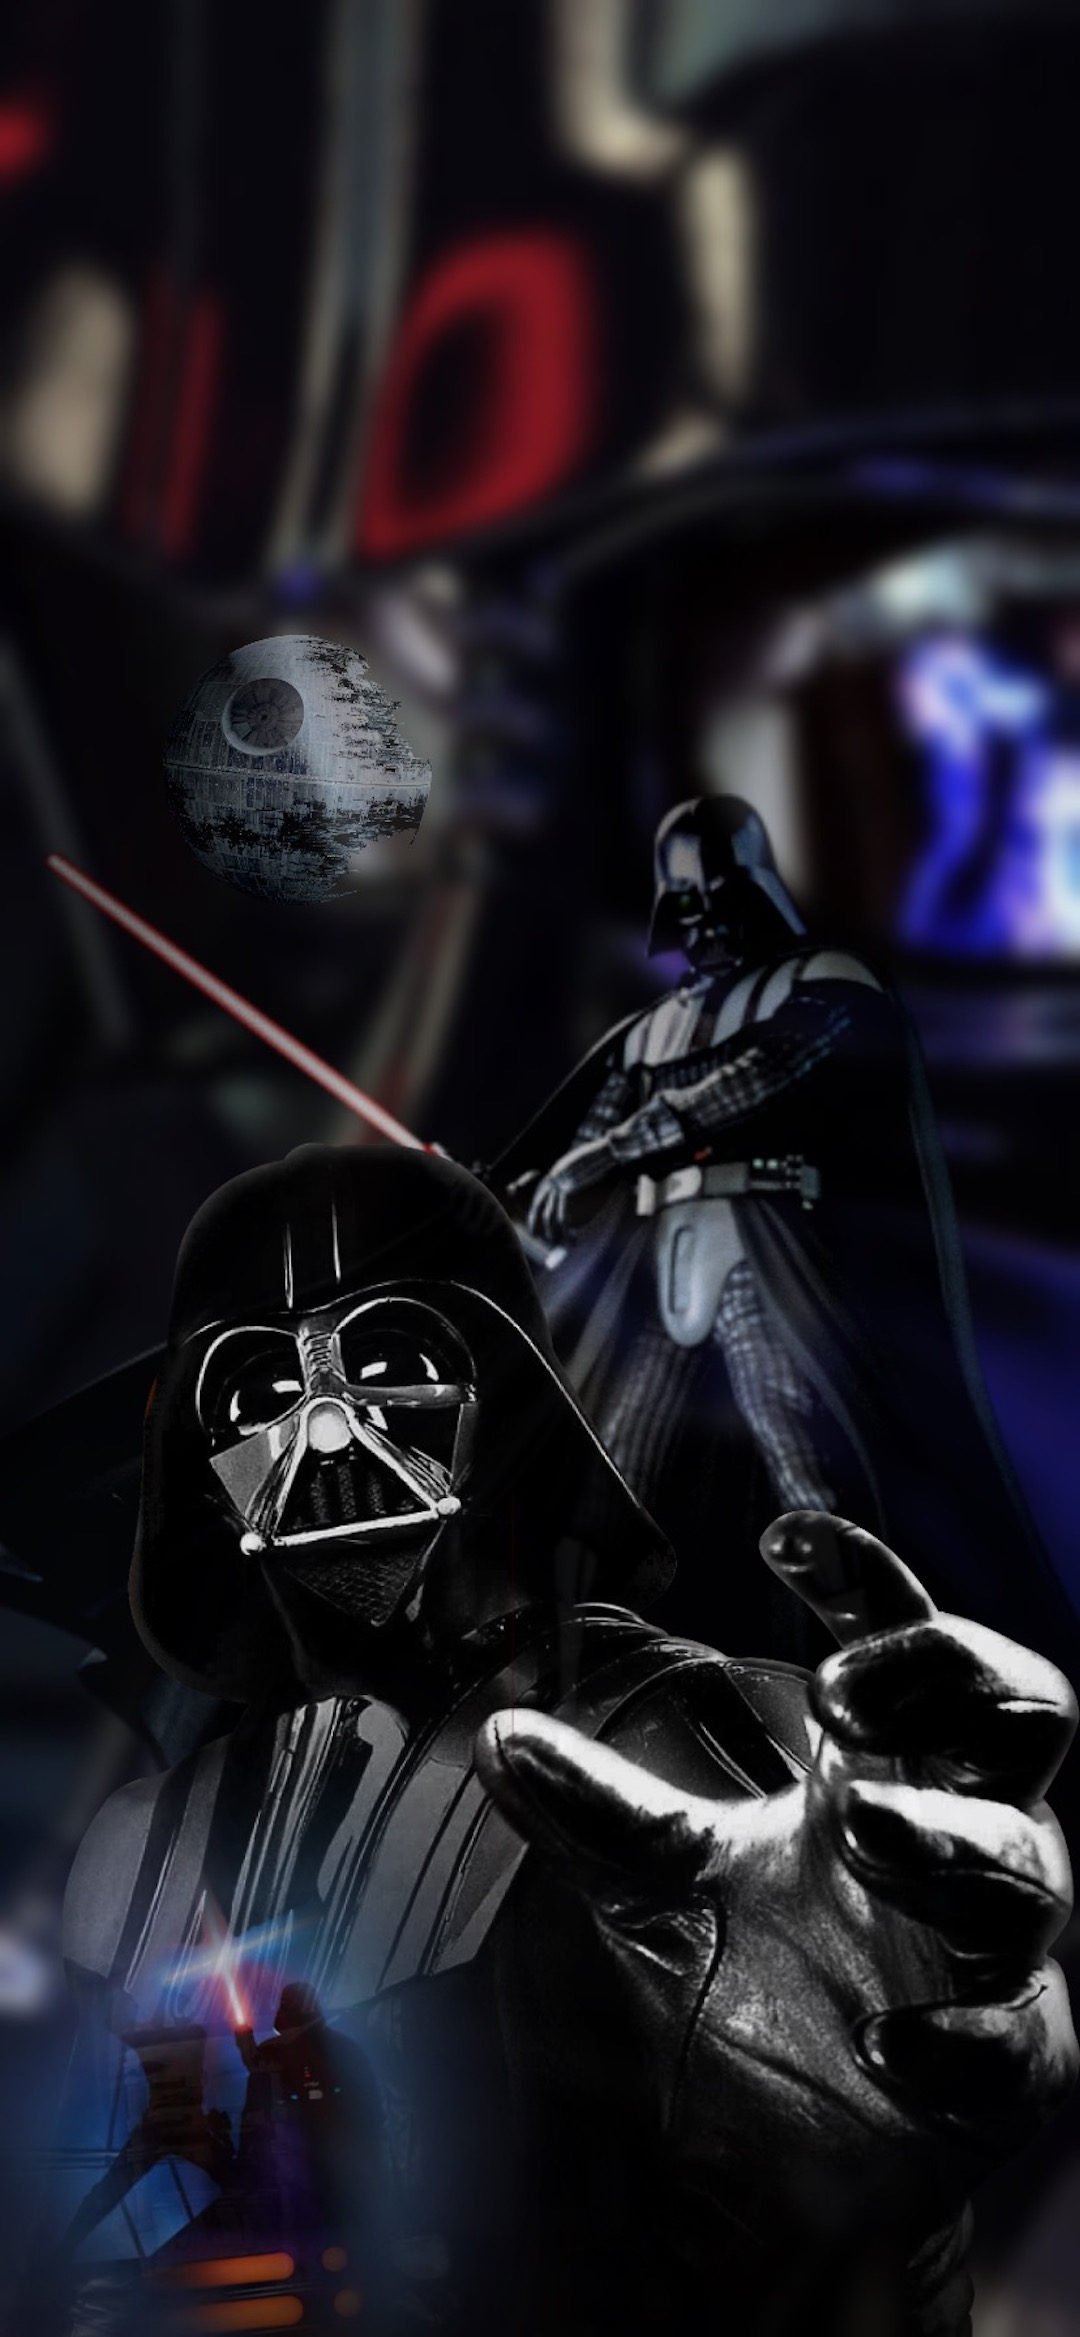 darth vader 2 star wars iphone X wallpaper by iamjoeya